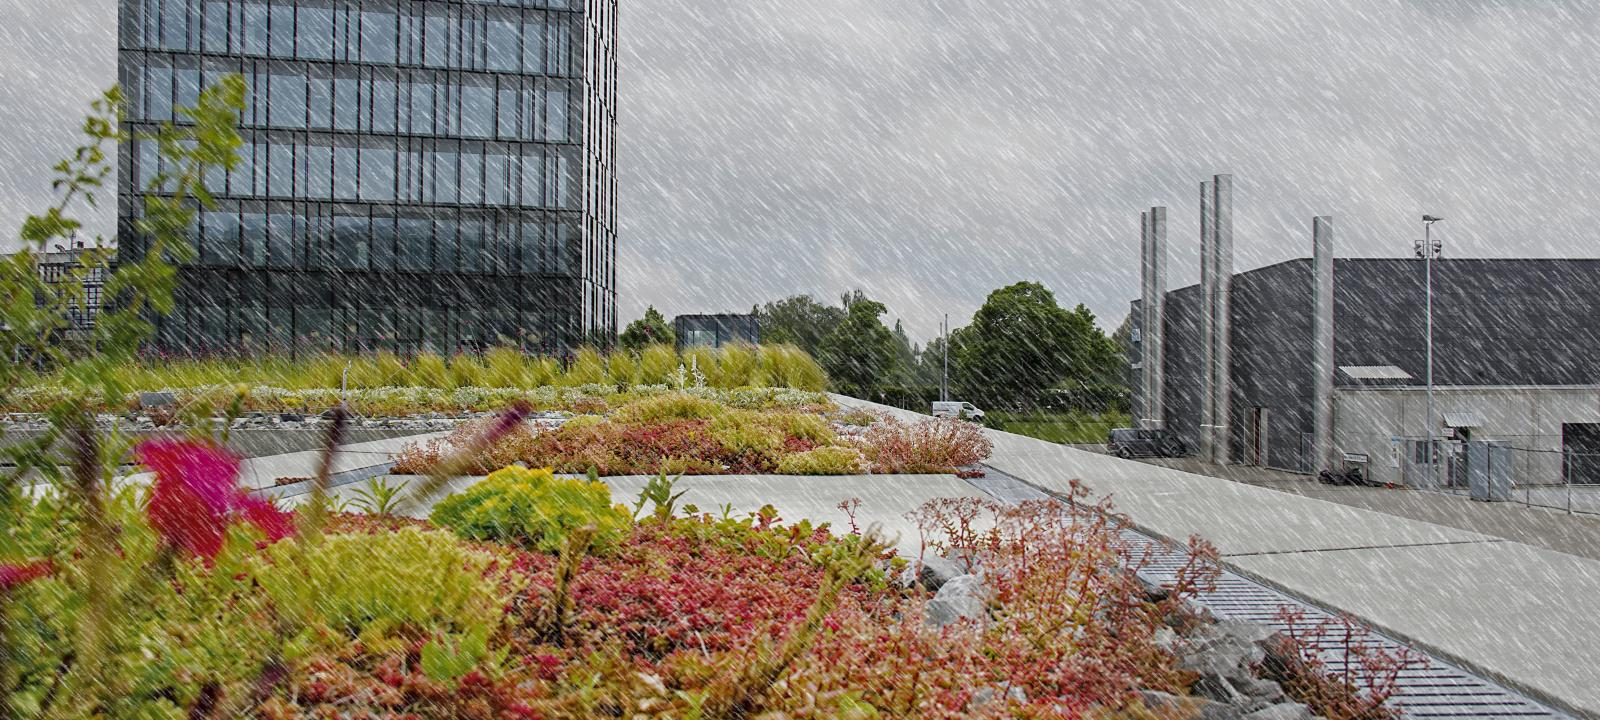 Stormwater Management Roof Zinco Green Roof Systems